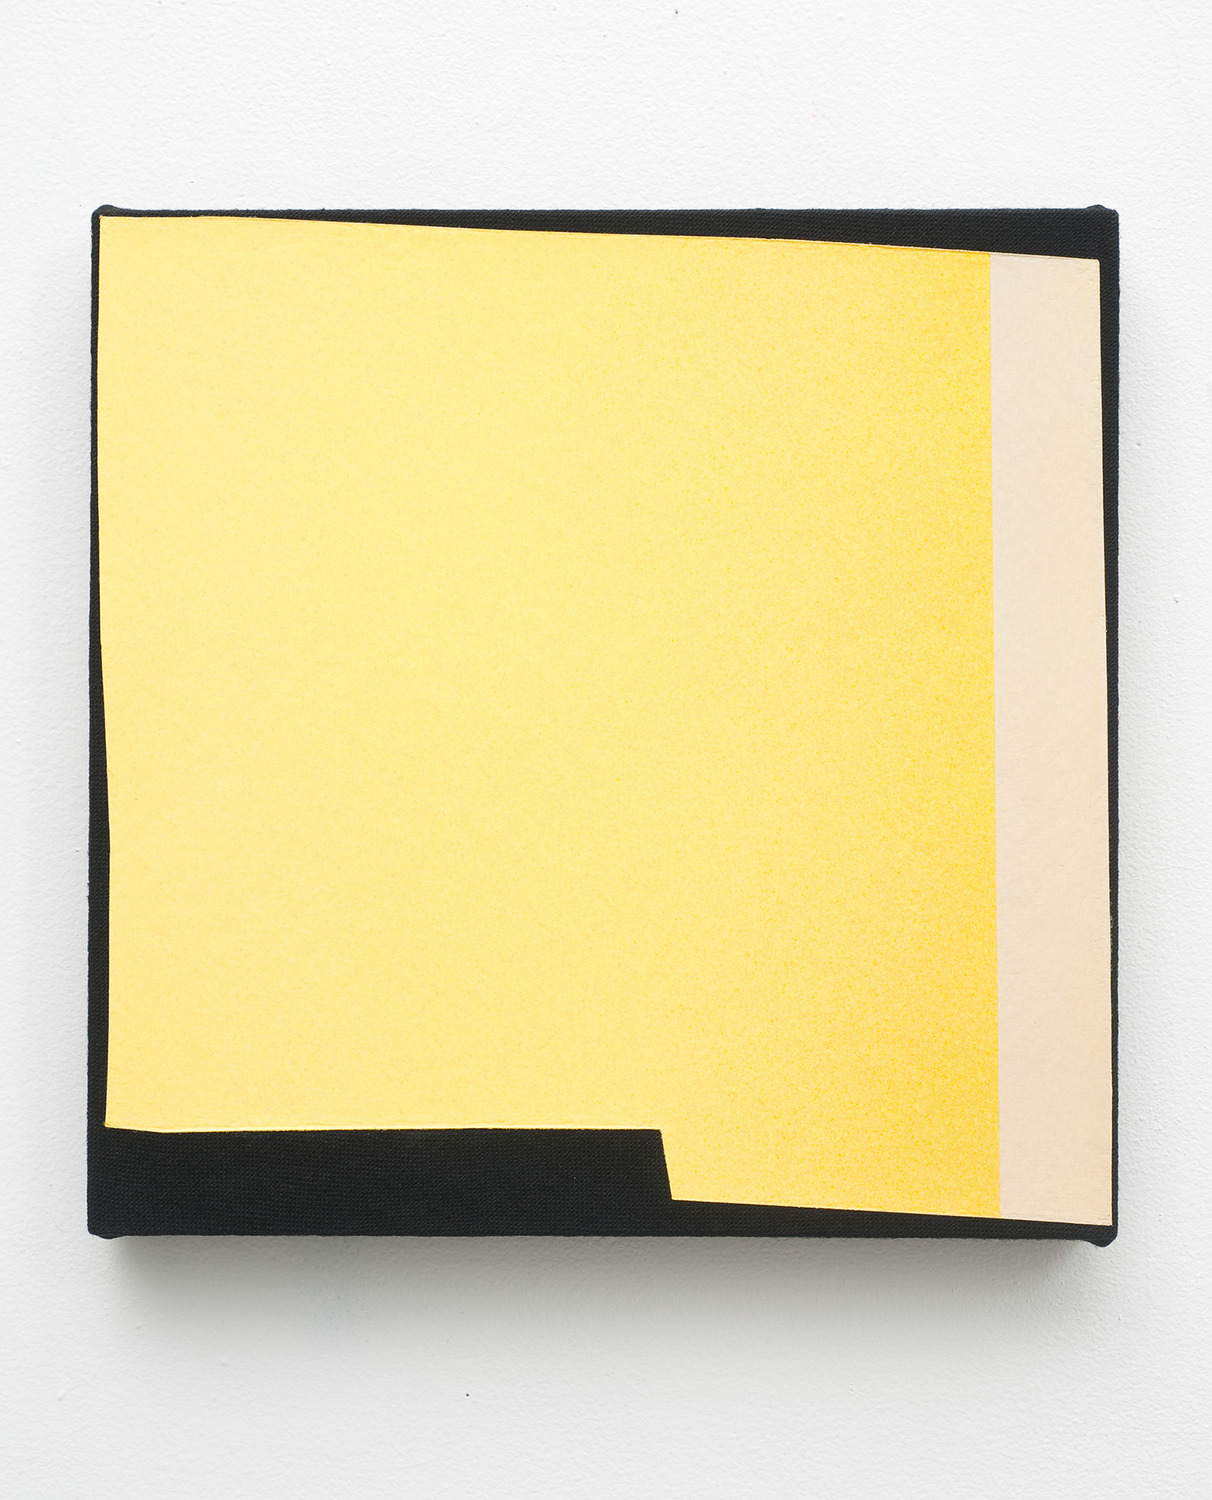 Magazine Painting (Yellow with Margin), 2011, Oil on dyed linen, 35.5 x 35.5 cm